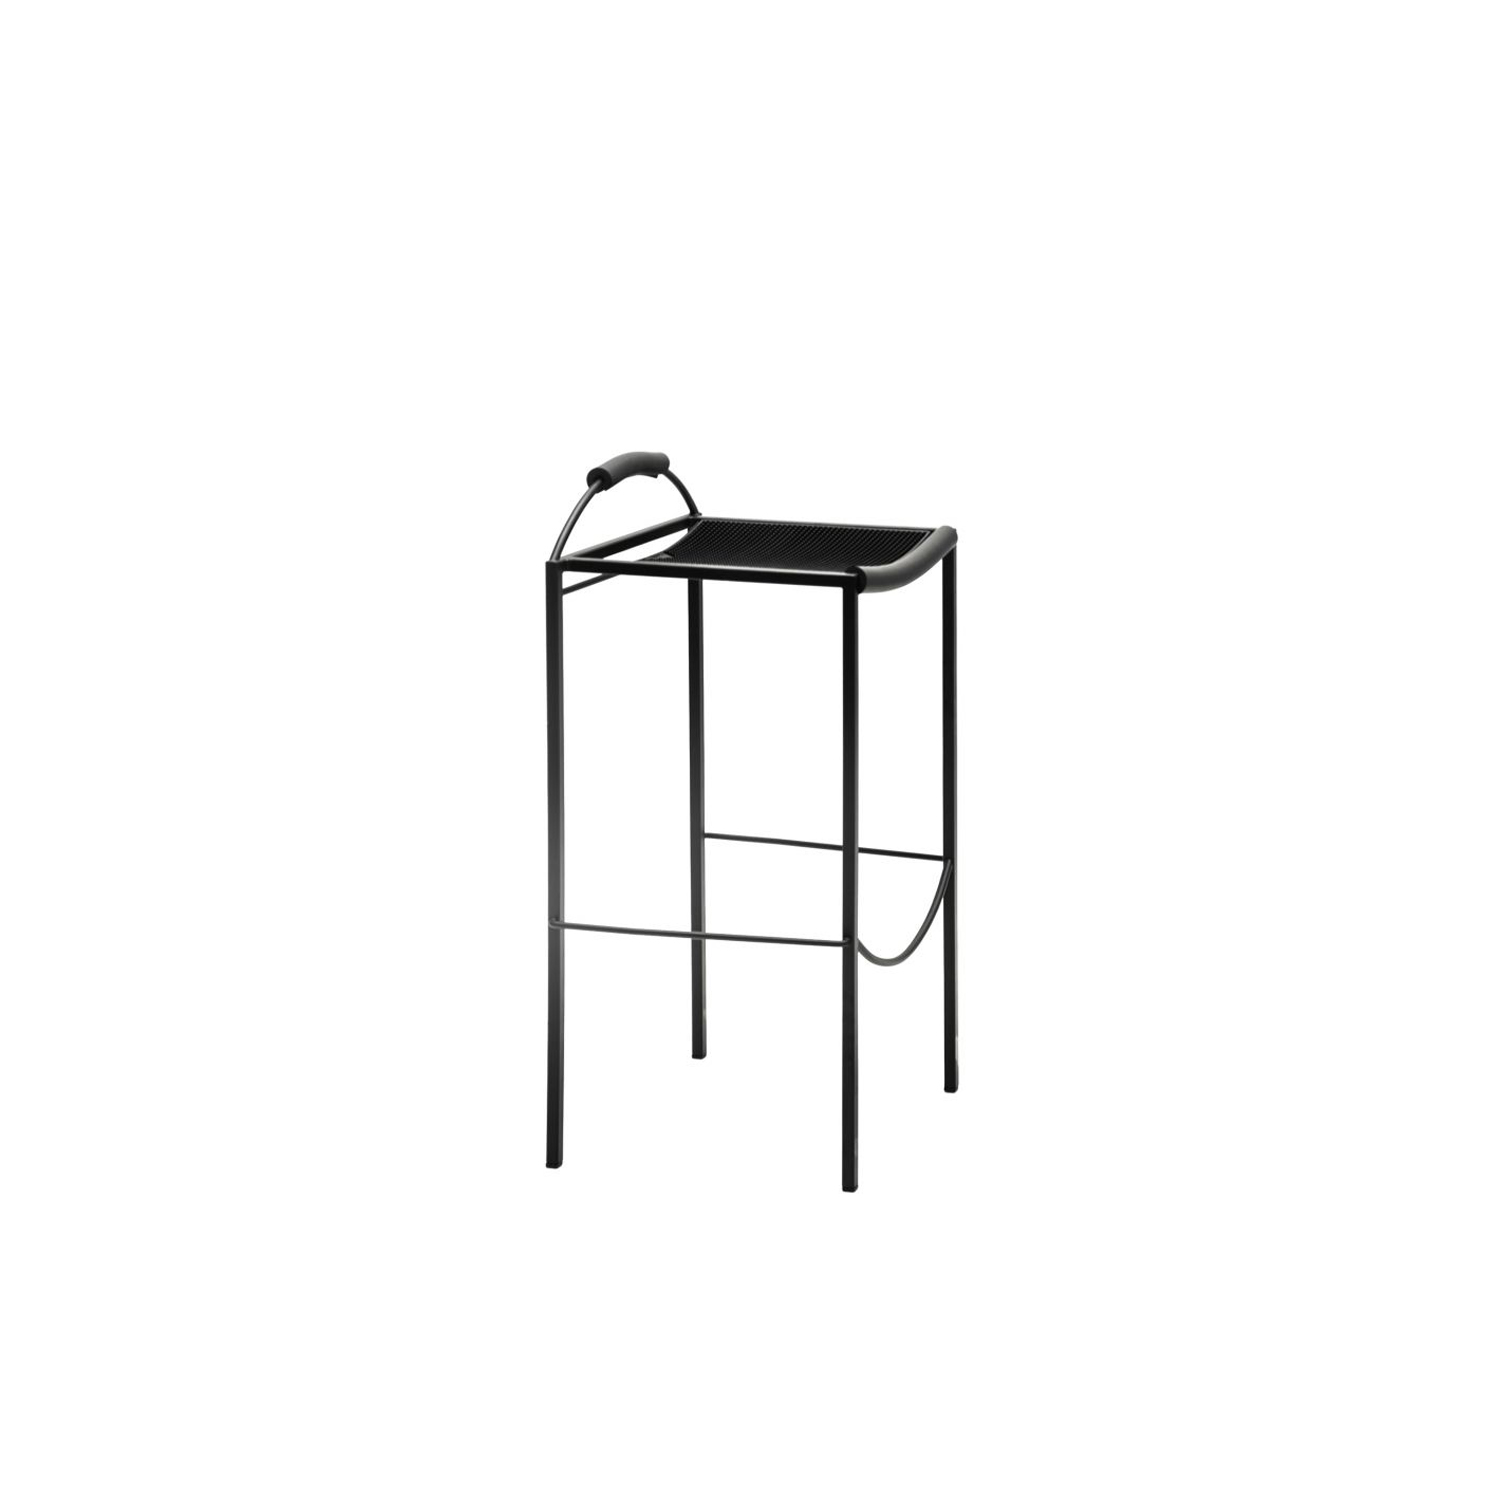 Sgabello Alto - The Sgabello Alto is a minimalist, stackable stool that was designed in 1984 by Maurizio Peregalli. It has a very thin profile so this means that it is suited to office spaces as well as in the home. This elegant stool has an all-black tubular steel frame. The frame is epoxy painted semi opaque black and the seat is made with thousand points rubber. The back is in black extruded rubber